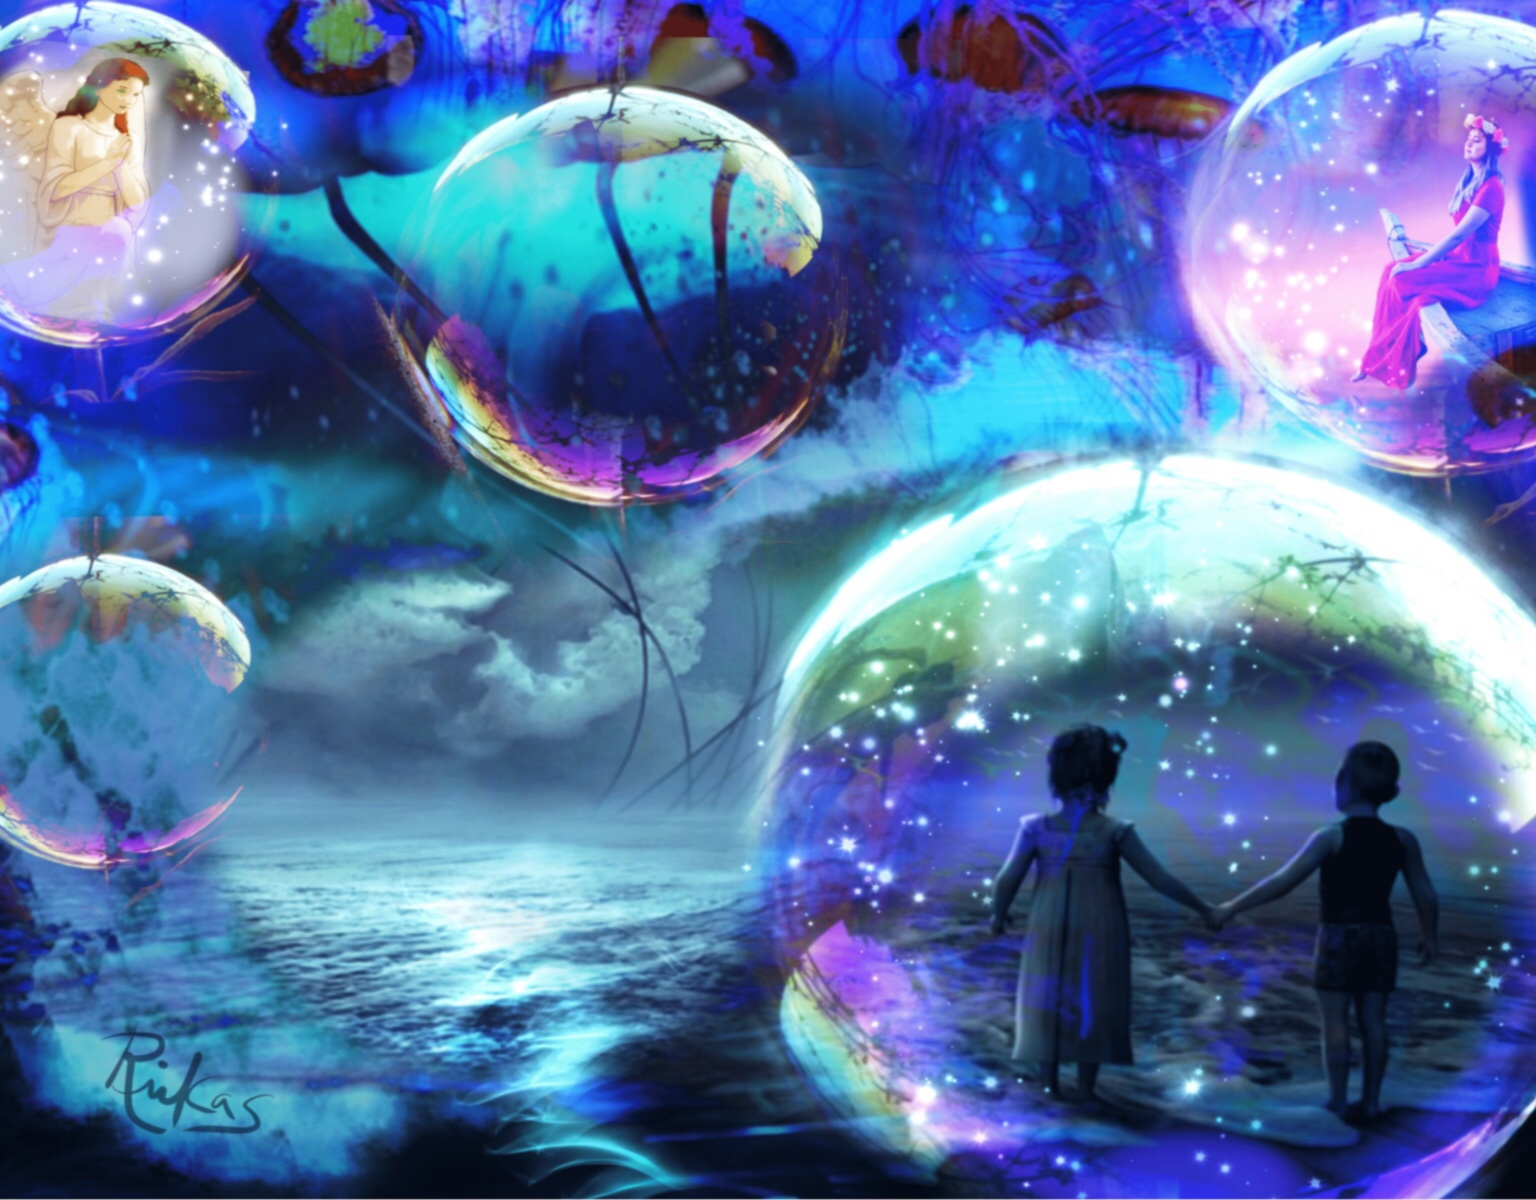 Flying Jellyfish and Magic Orbs by Diana Riukas, iPad digital art.......One of the images submitted to magazine